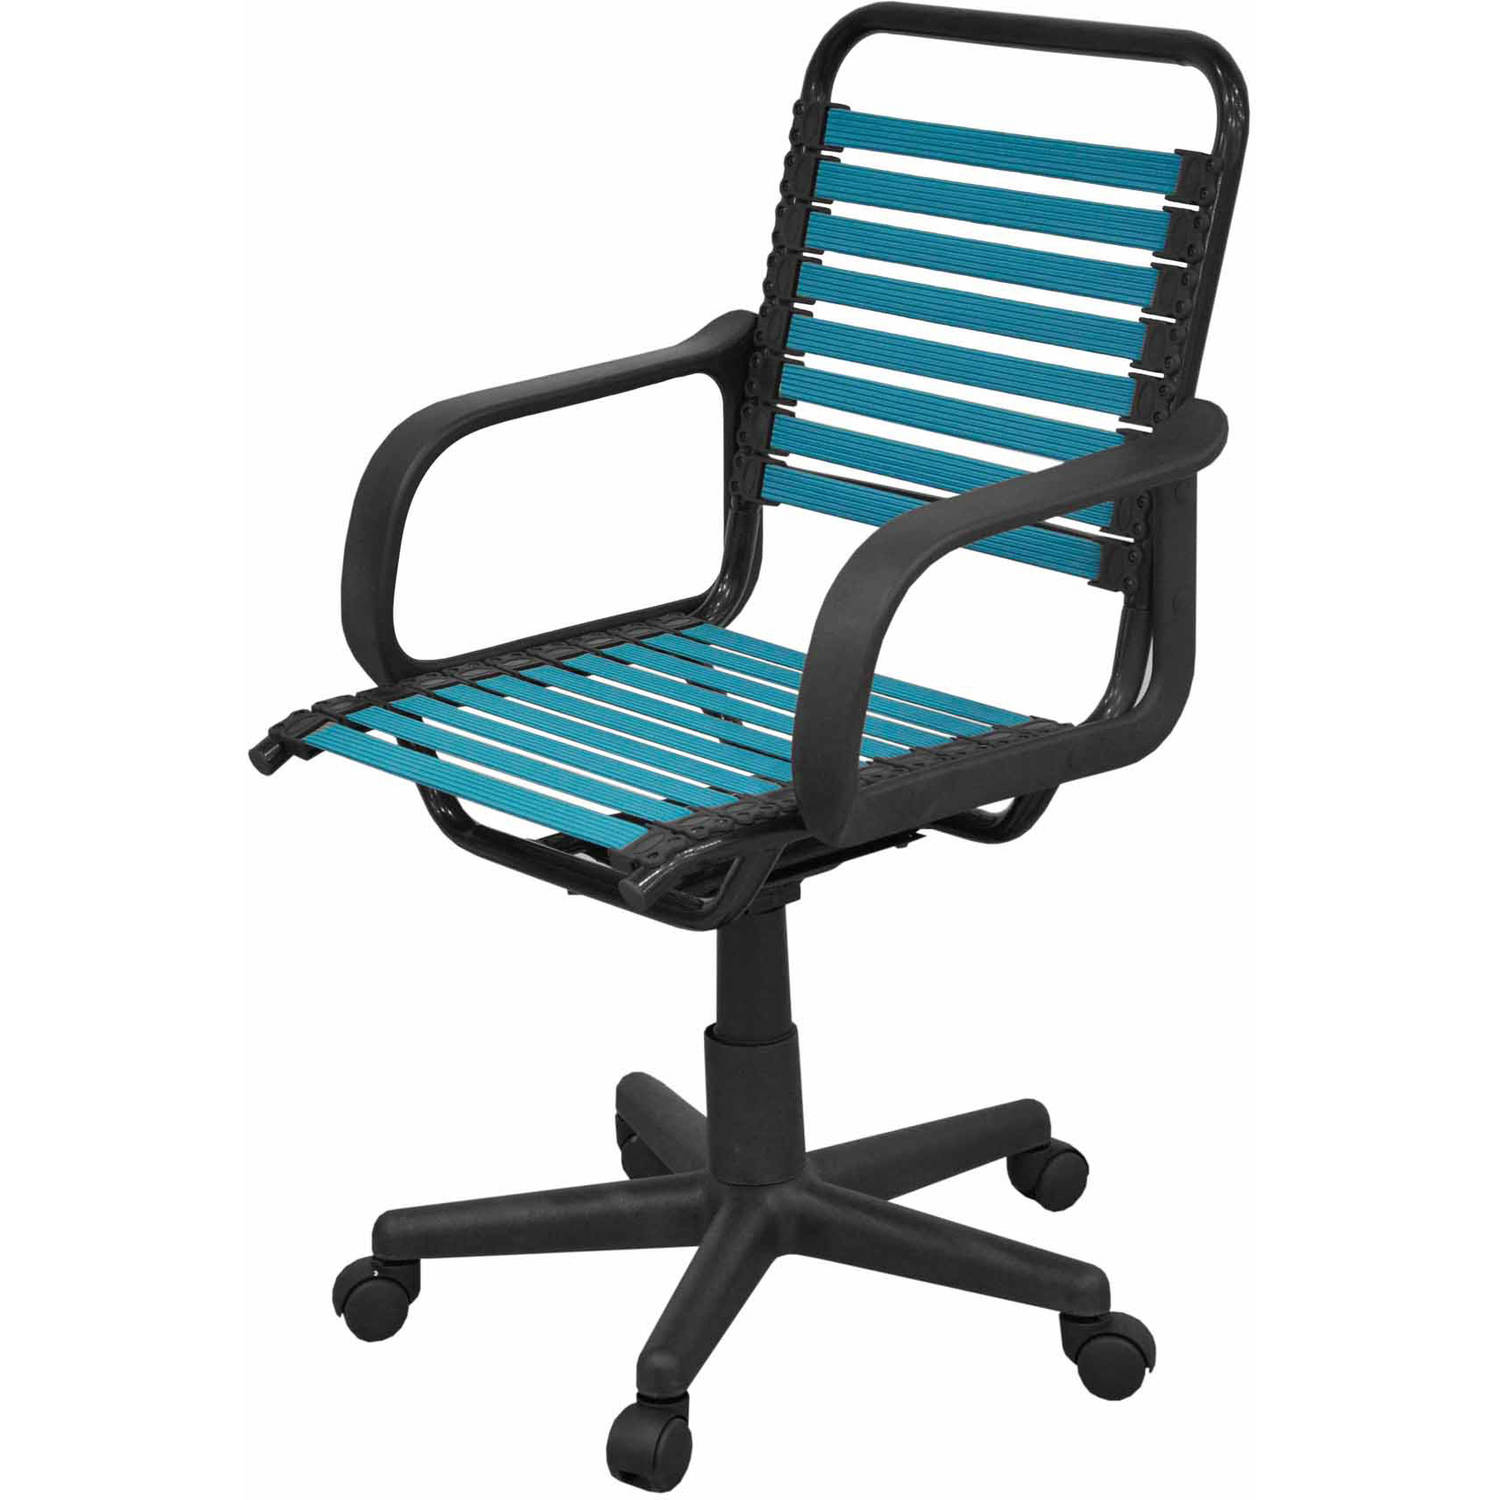 Charmant ... Your Zone Bungee Office Chair, Turquiose